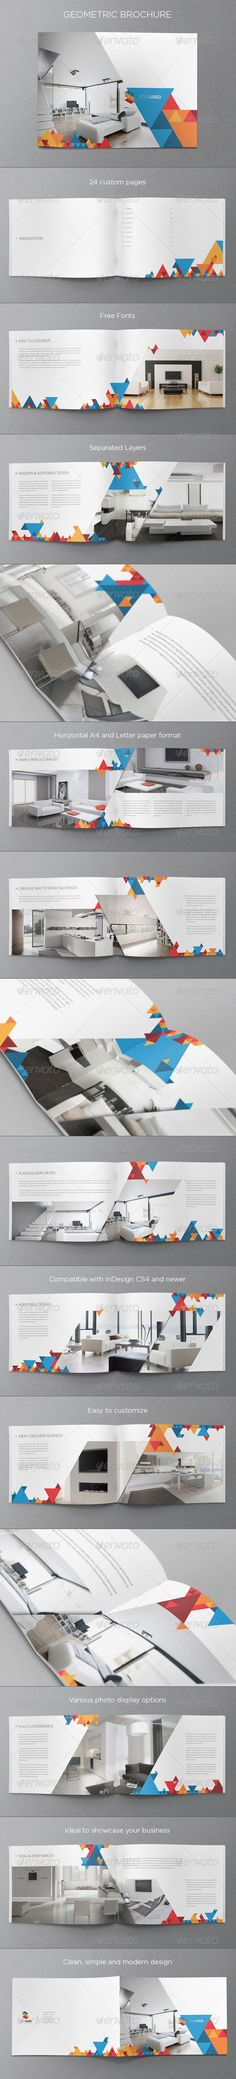 Modern Geometric Brochure — InDesign INDD #design #clean • Available here → https://graphicriver.net/item/modern-geometric-brochure/5427360?ref=pxcr